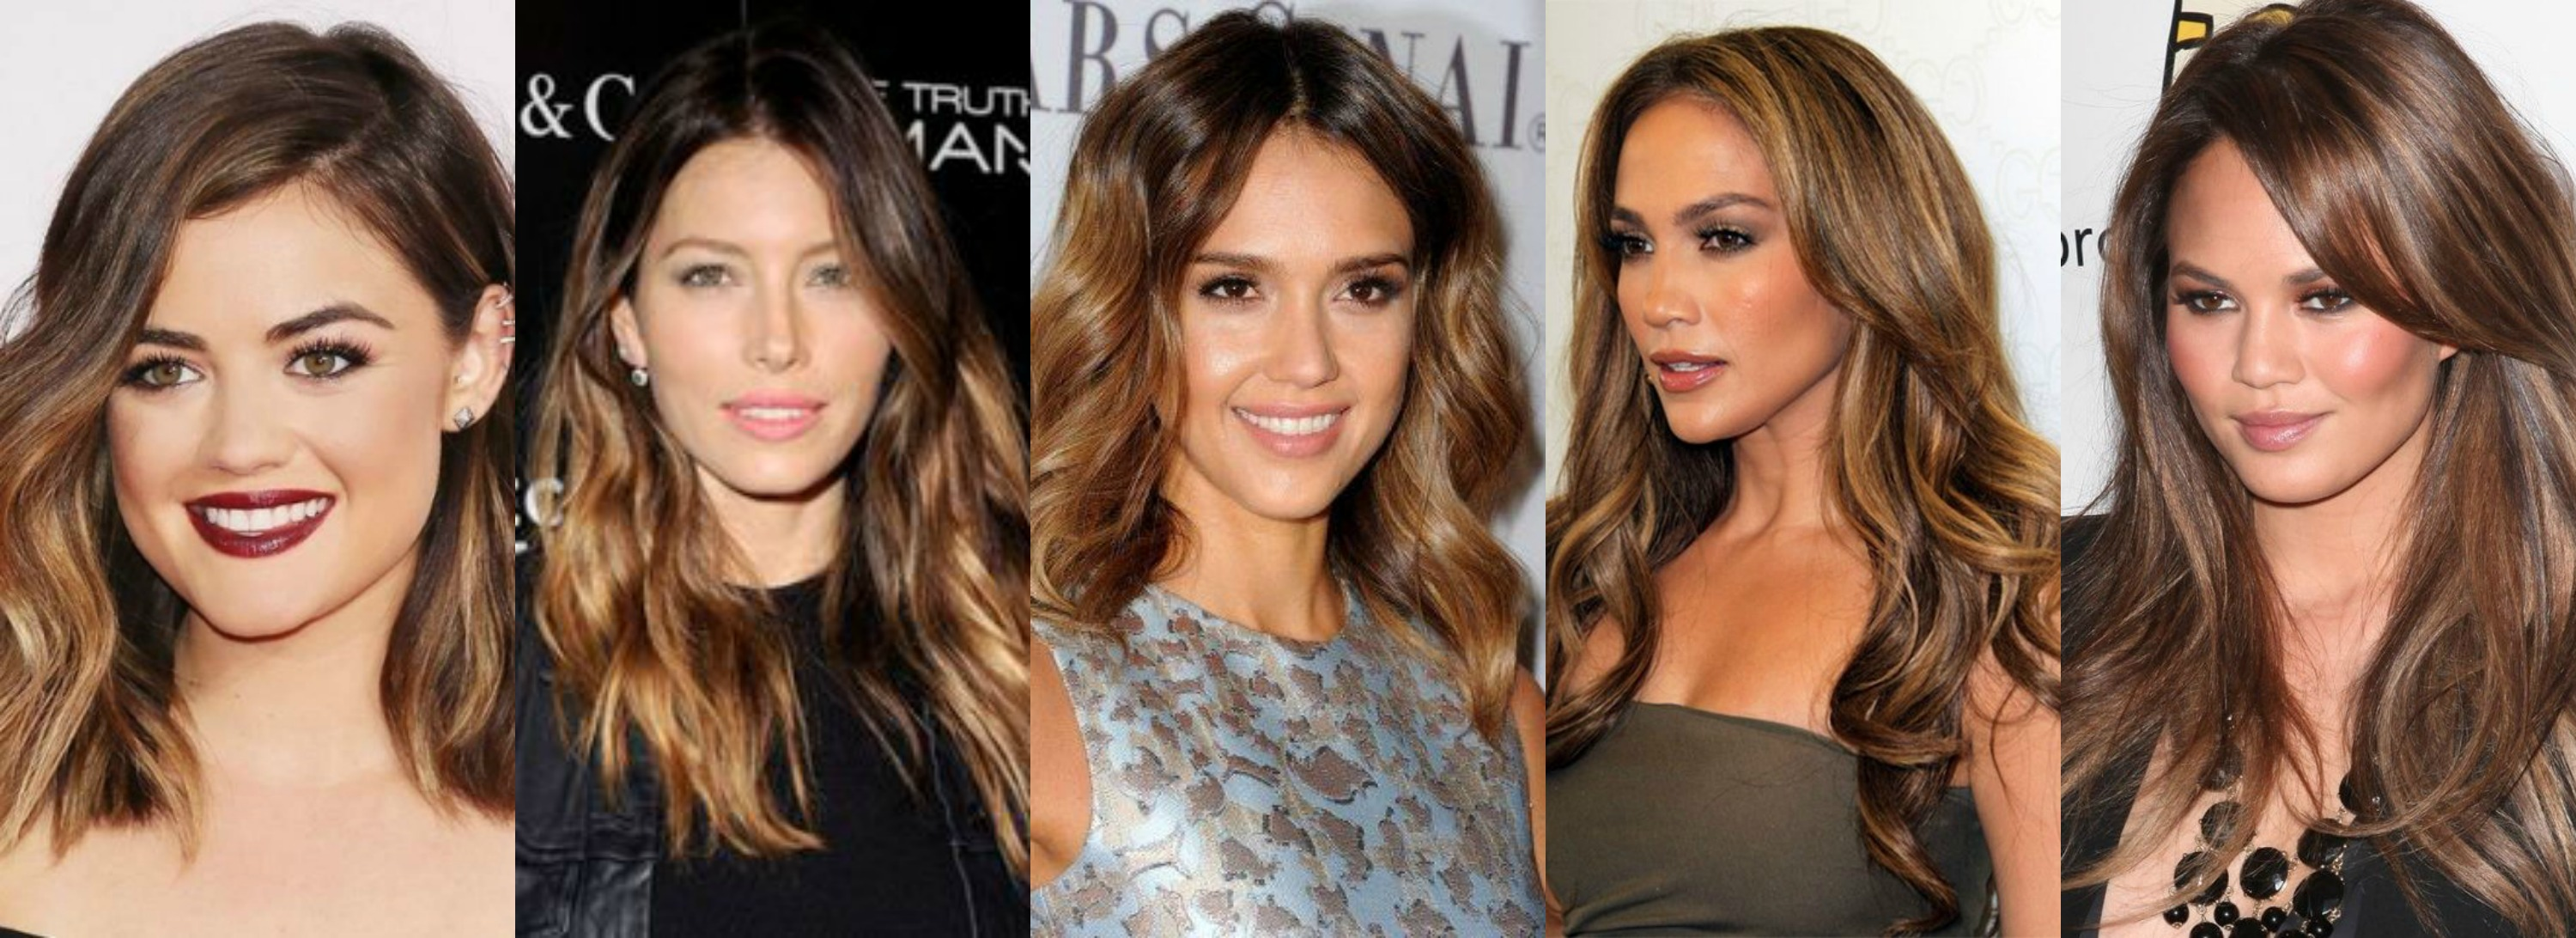 Tiger eye: il nuovo hair trend amato da celebrities e vip